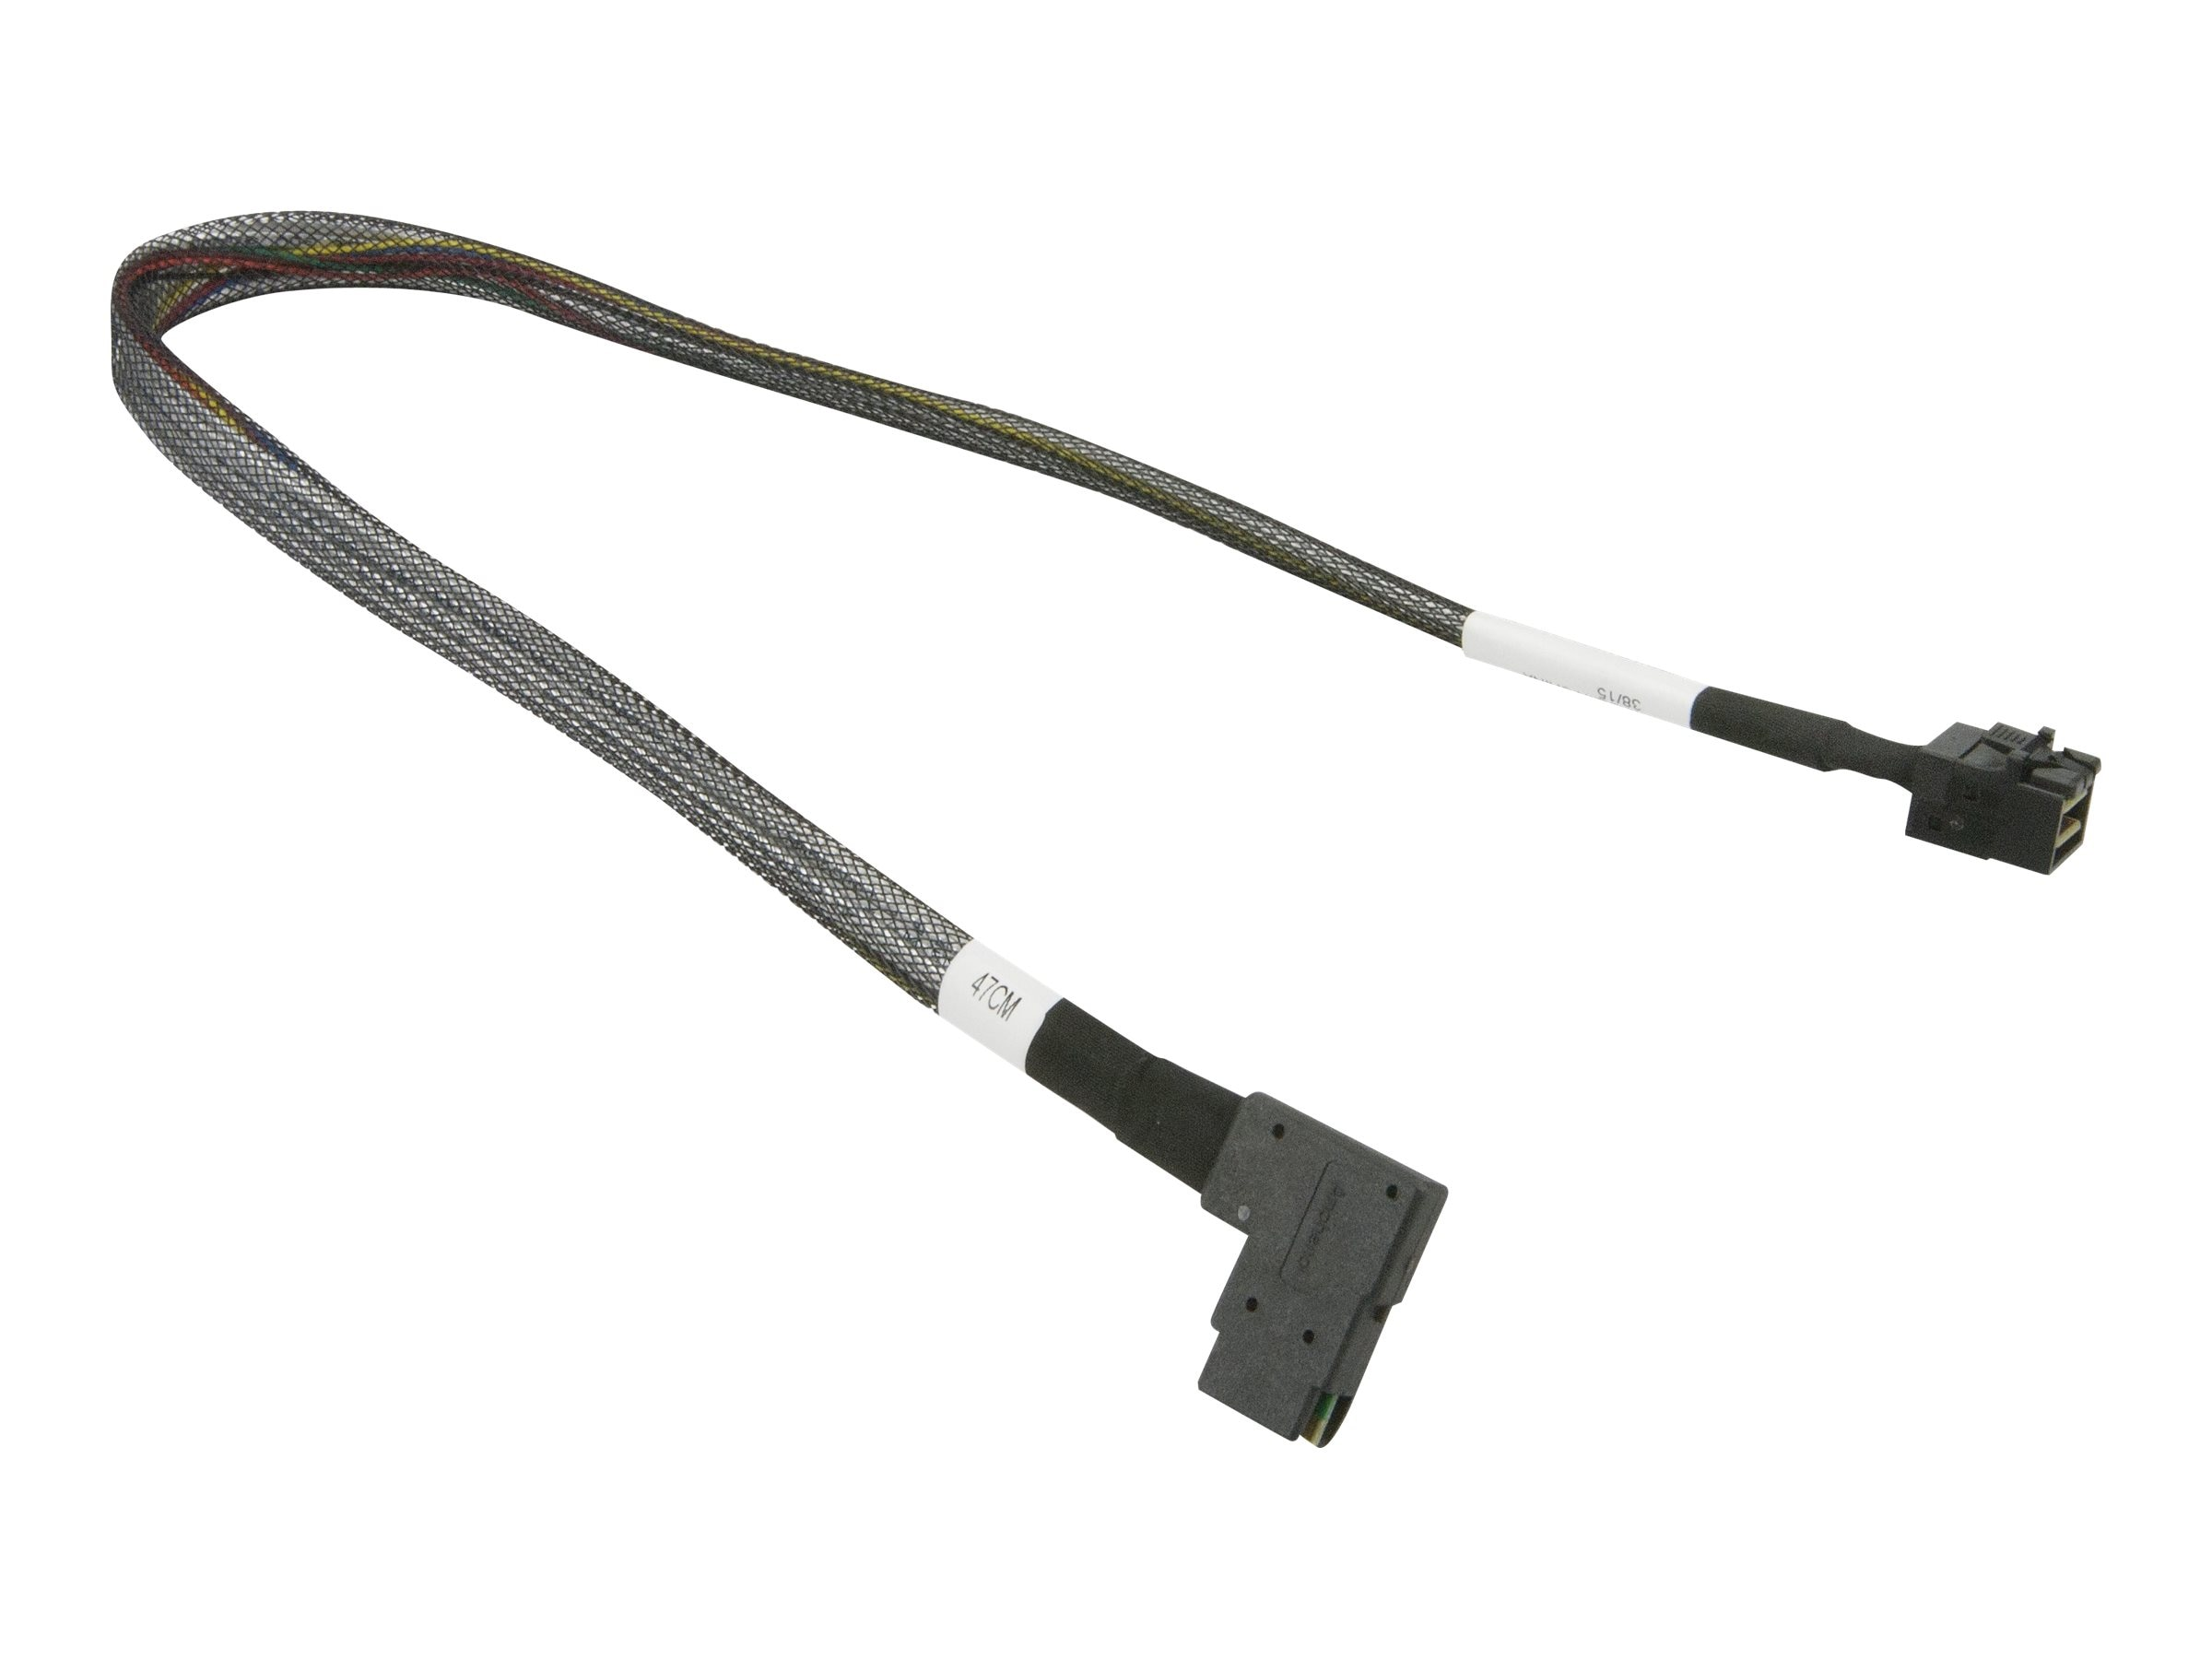 Supermicro 30AWG miniSAS to miniSAS HD Cable, 47cm, CBL-SAST-0655